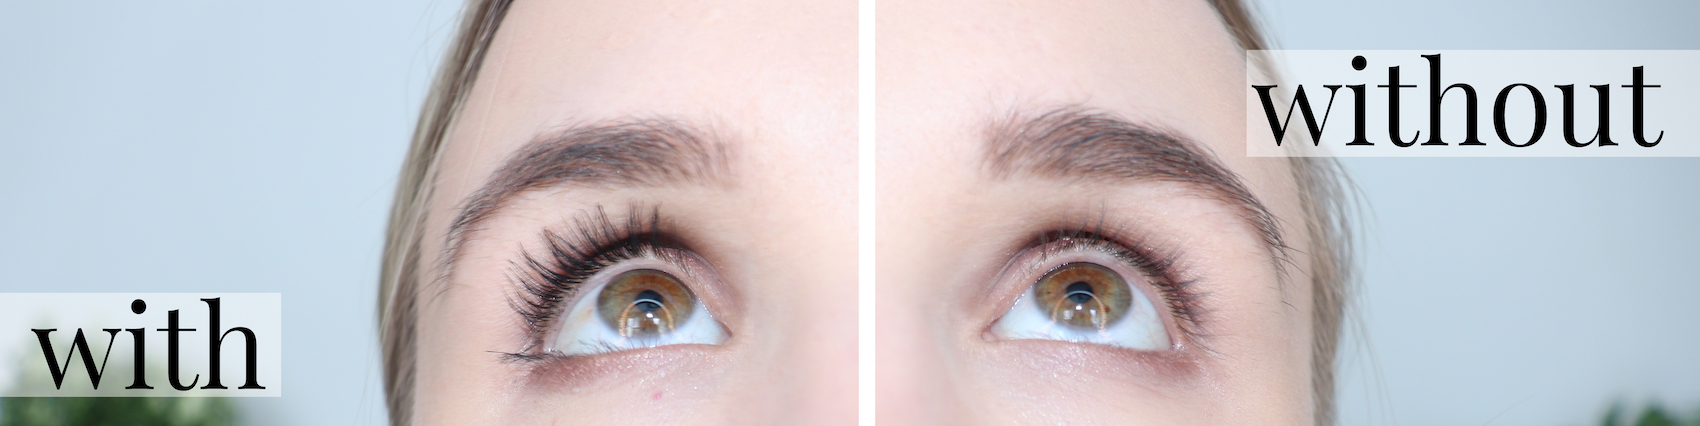 before afte upper view pat mcgrath lashes